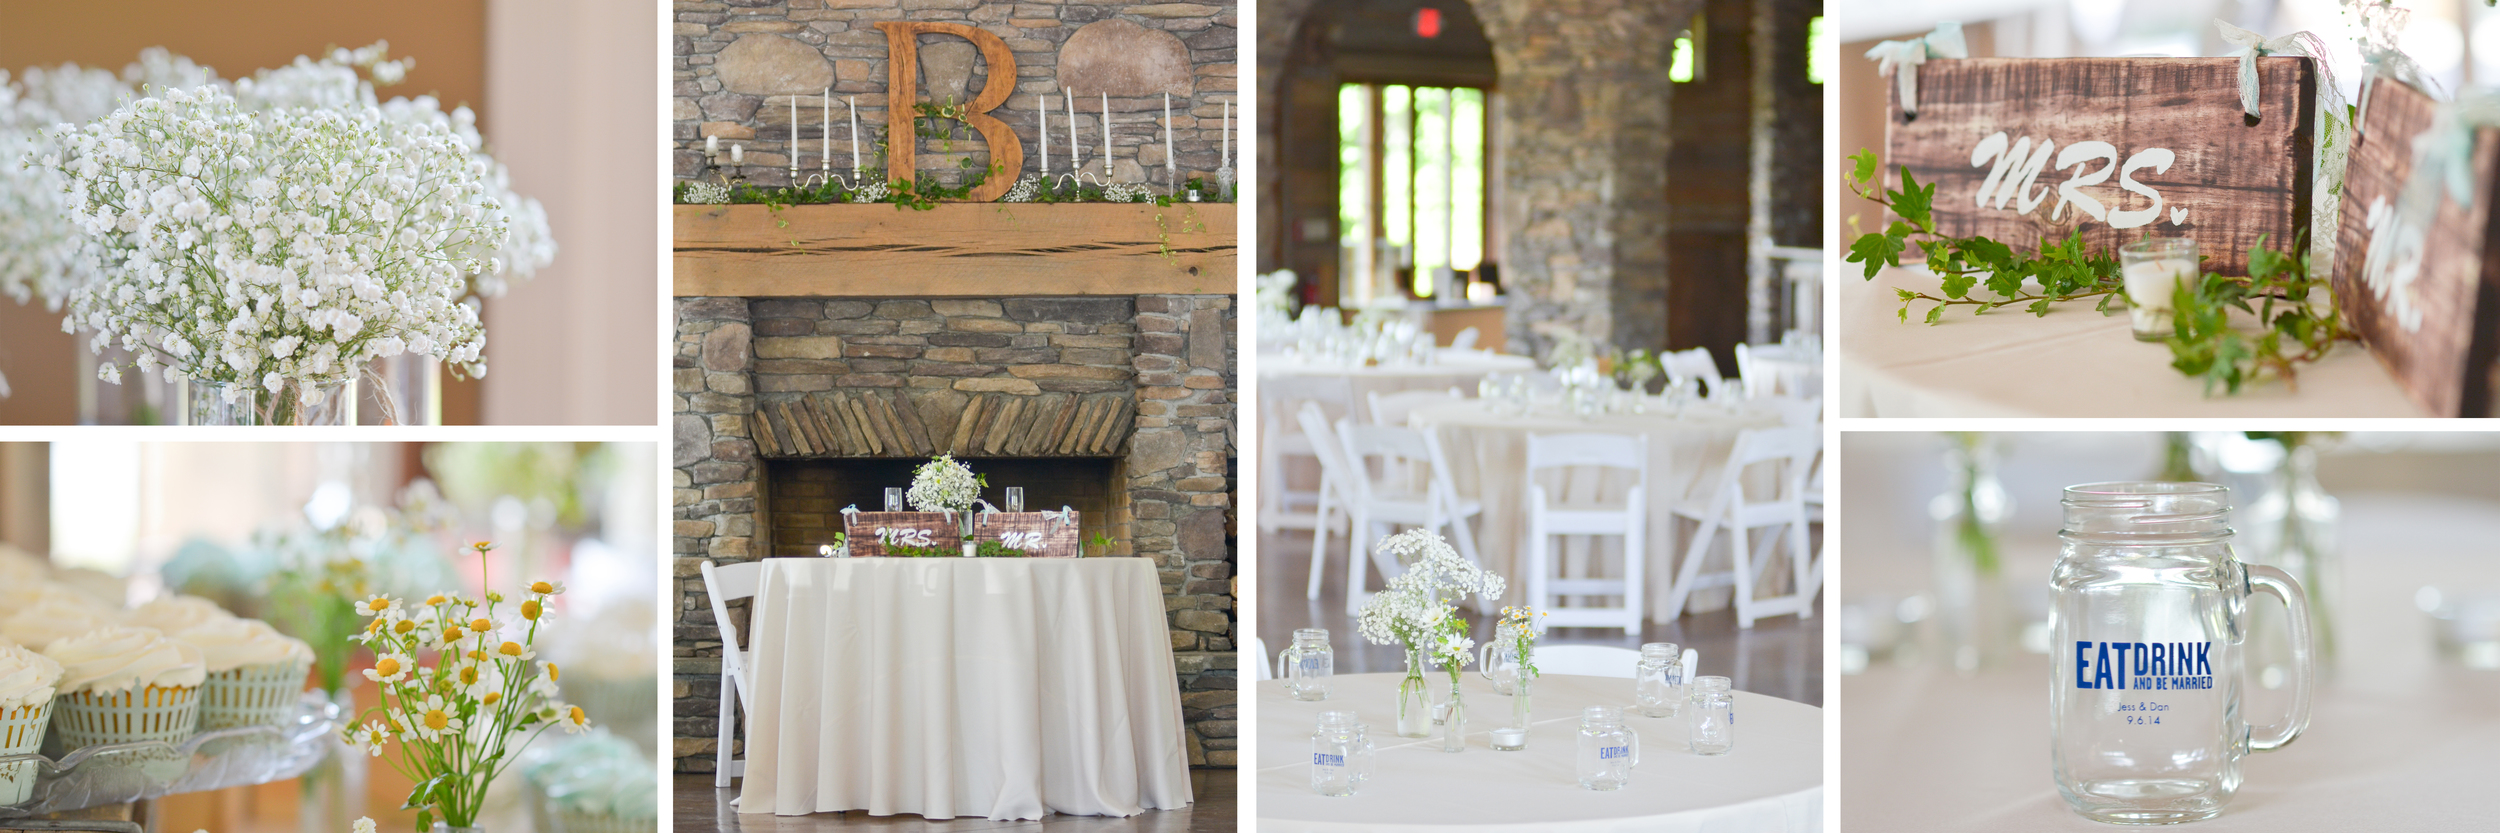 Everything about this wedding was perfect, from all of the DIY details to the oh so in love couple.